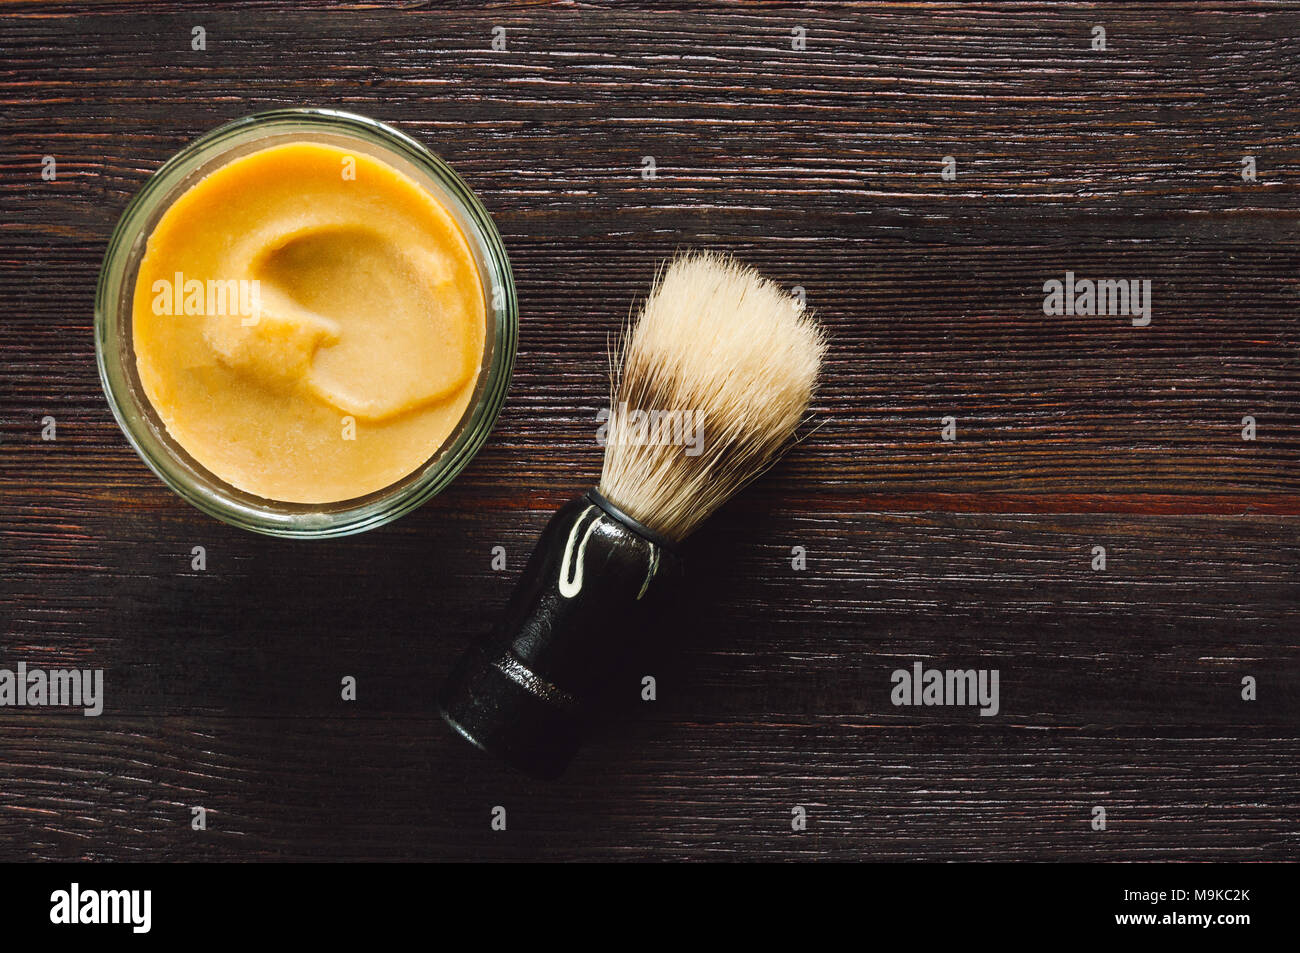 Men's Shaving Tools - Soap and Brush on Dark Table with Space for Copy - Stock Image